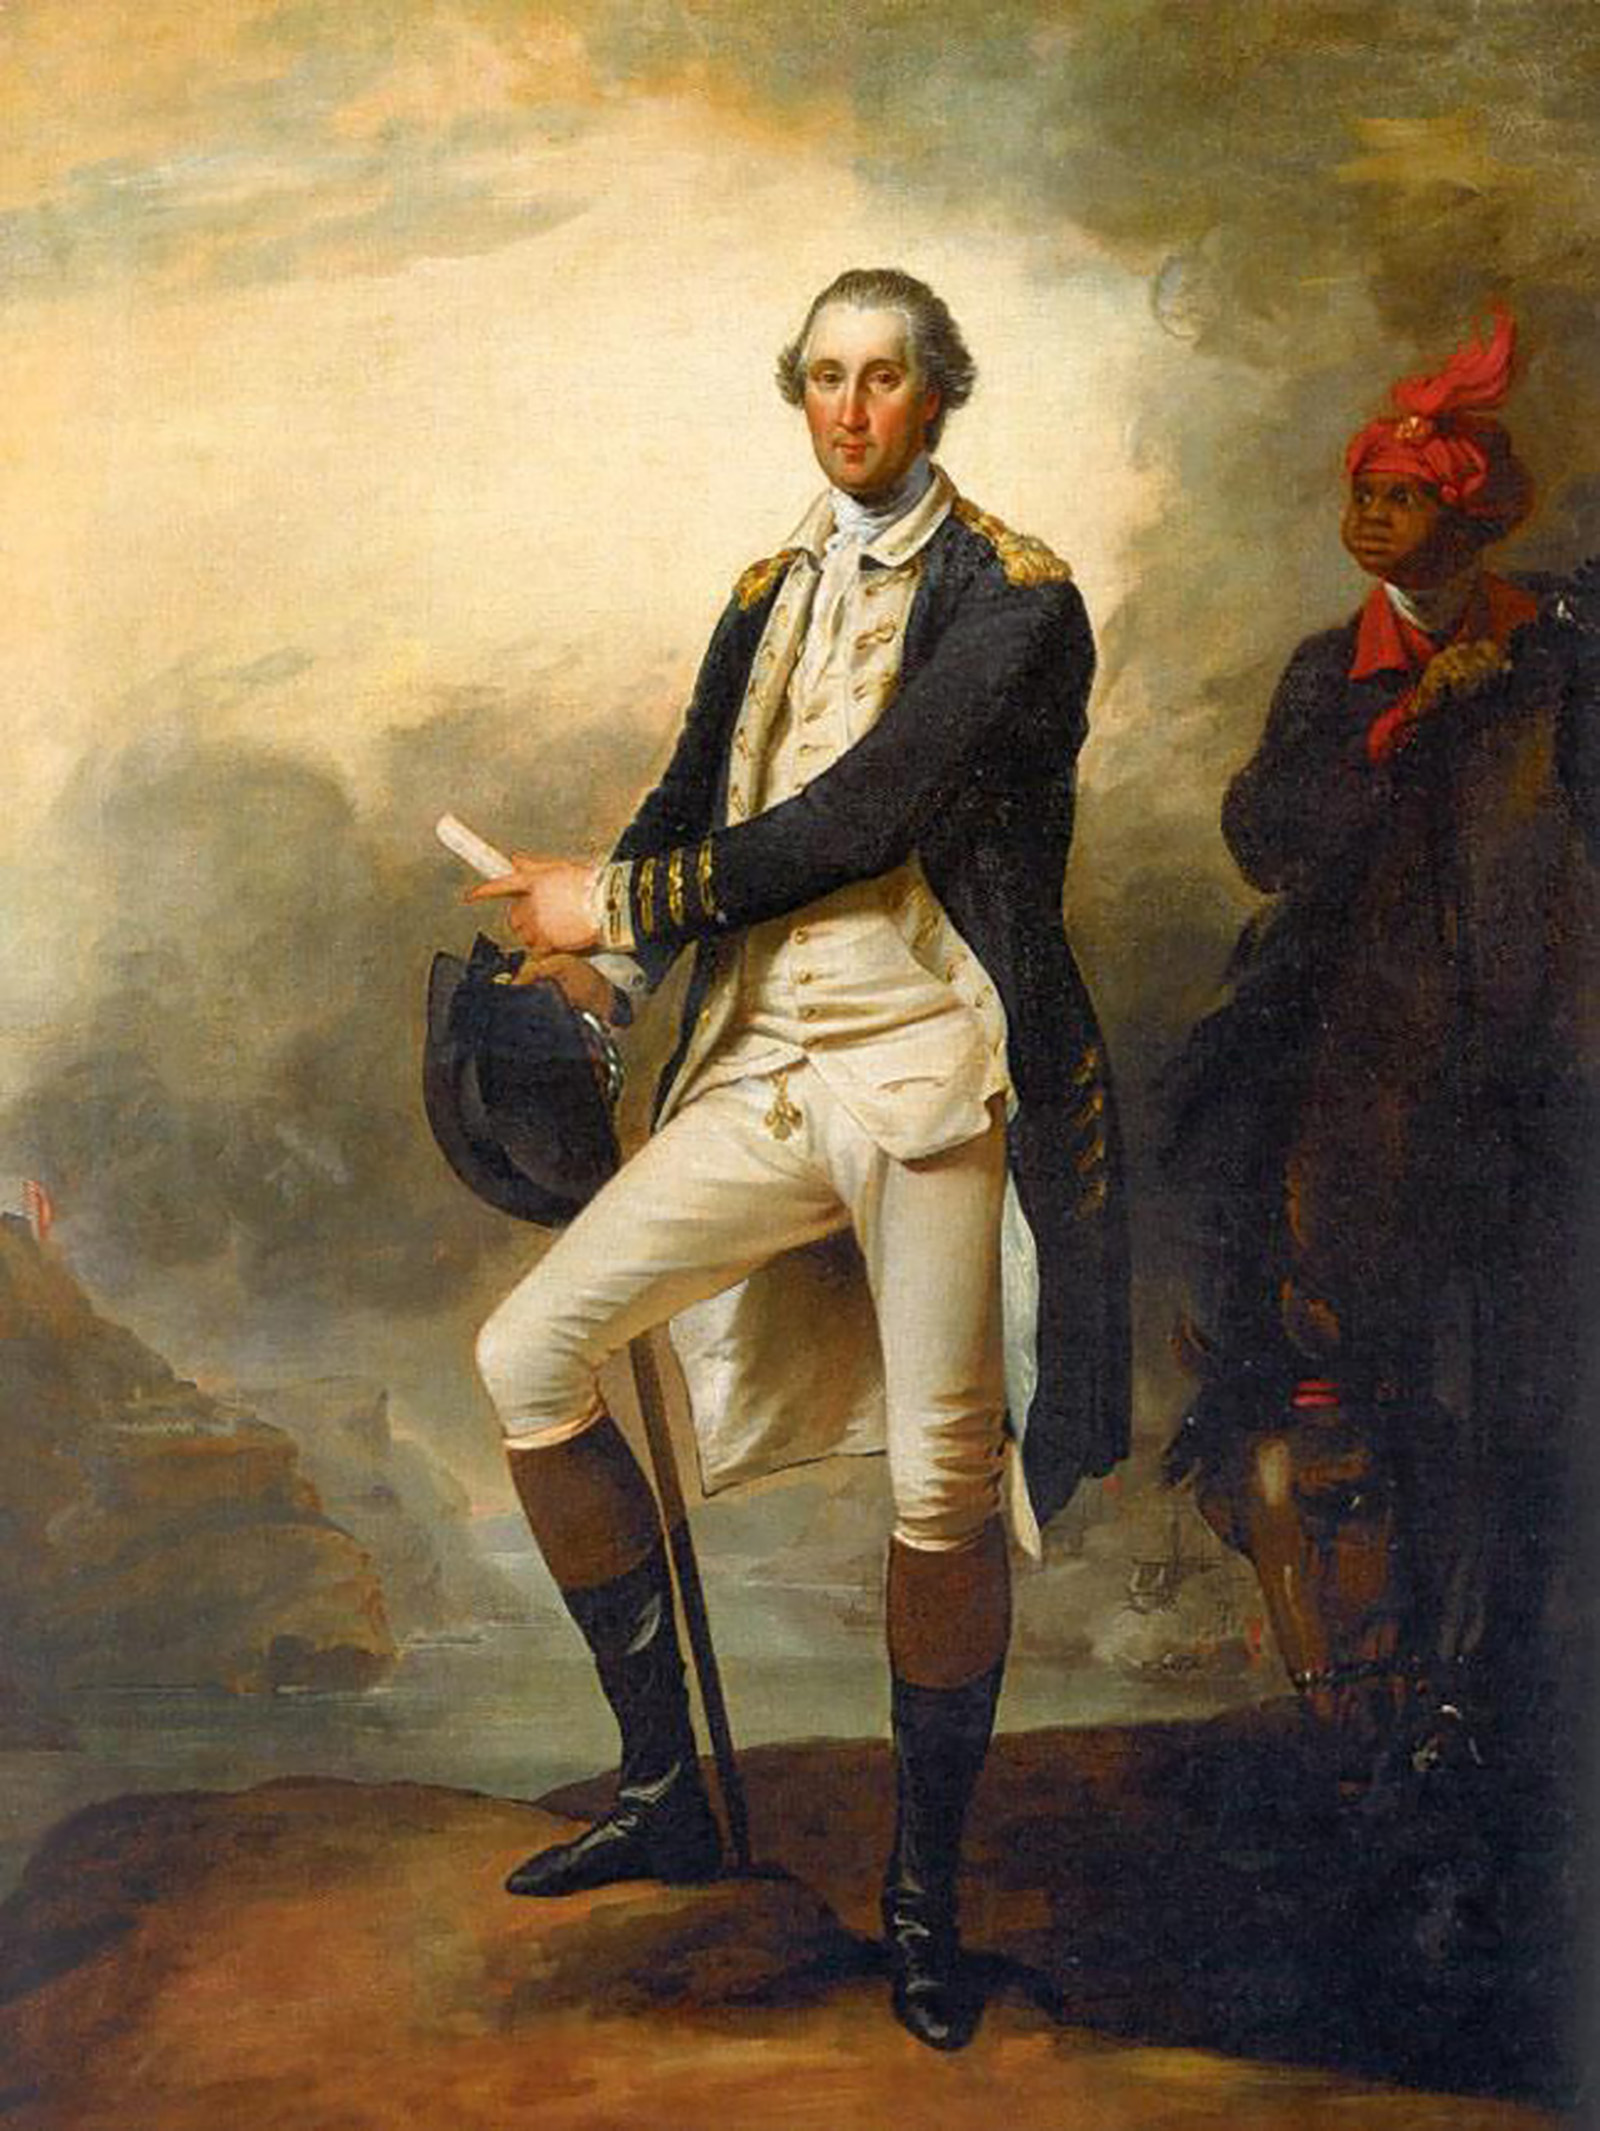 This Trumbull paining also depicts William Lee in stylized dress - George Washington, by John Trumbull, c. 1780. Courtesy The Metropolitan Museum of Art.